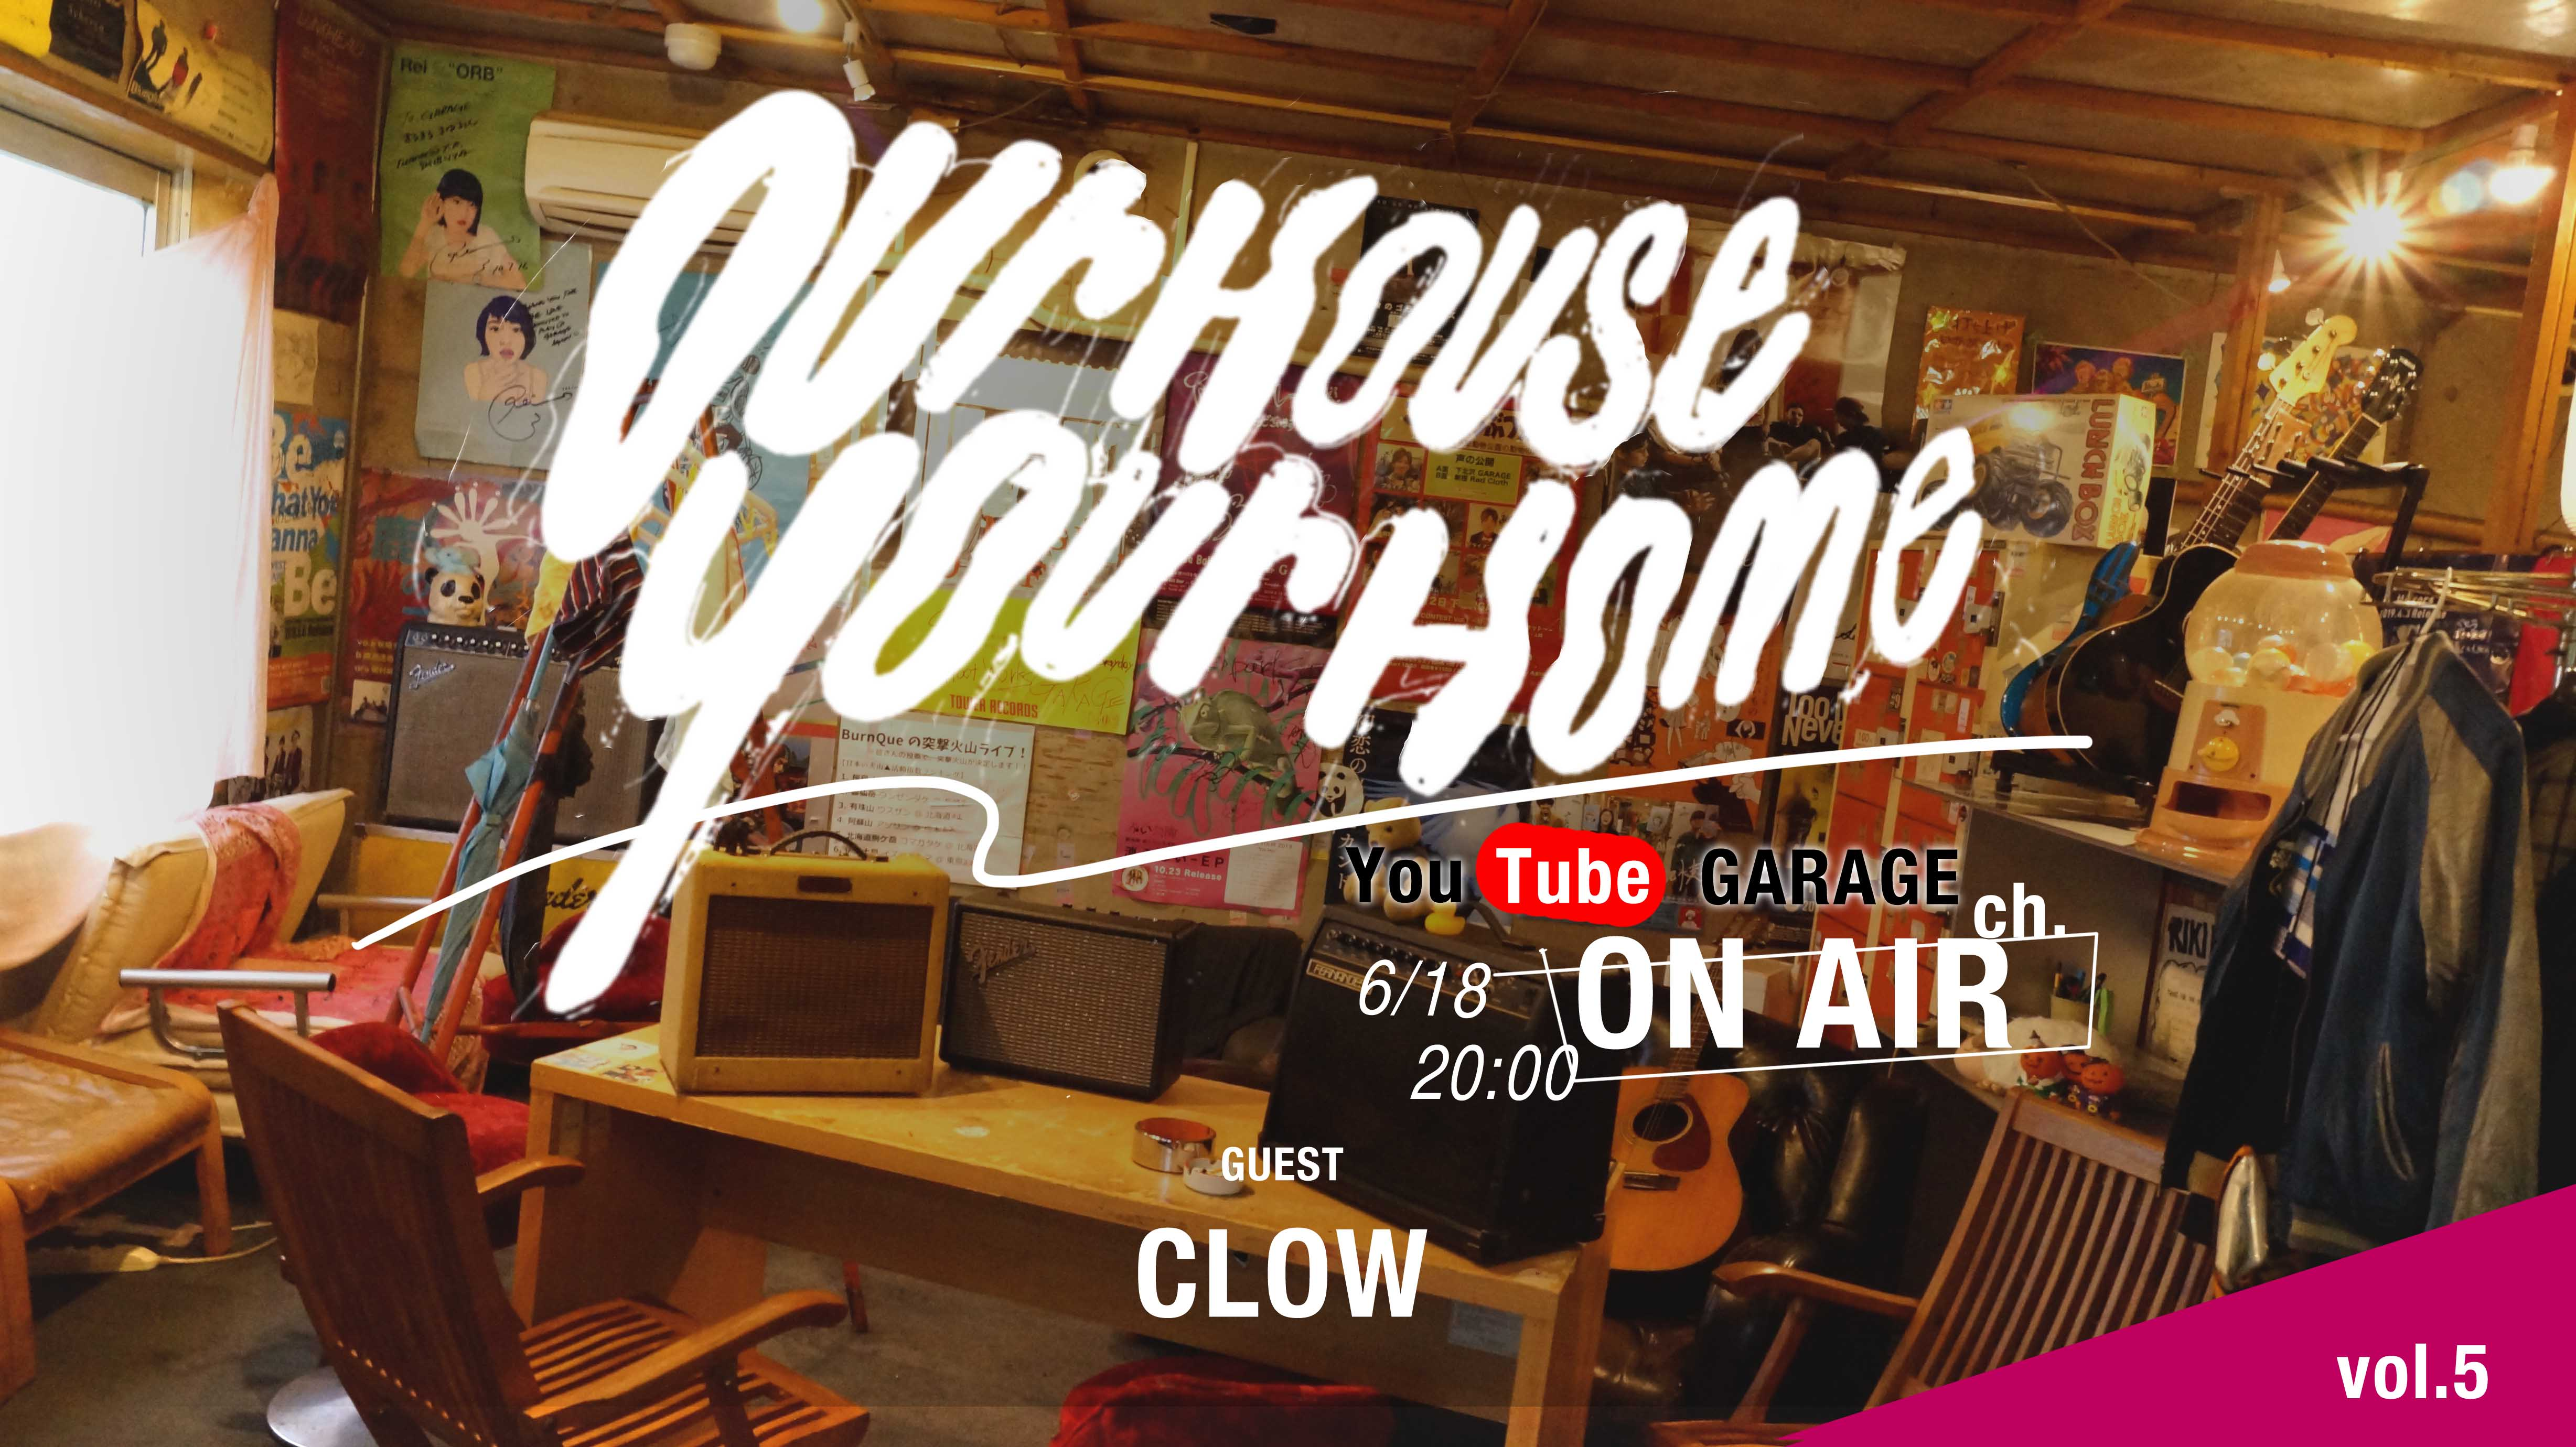 Our House Your Home vol.5